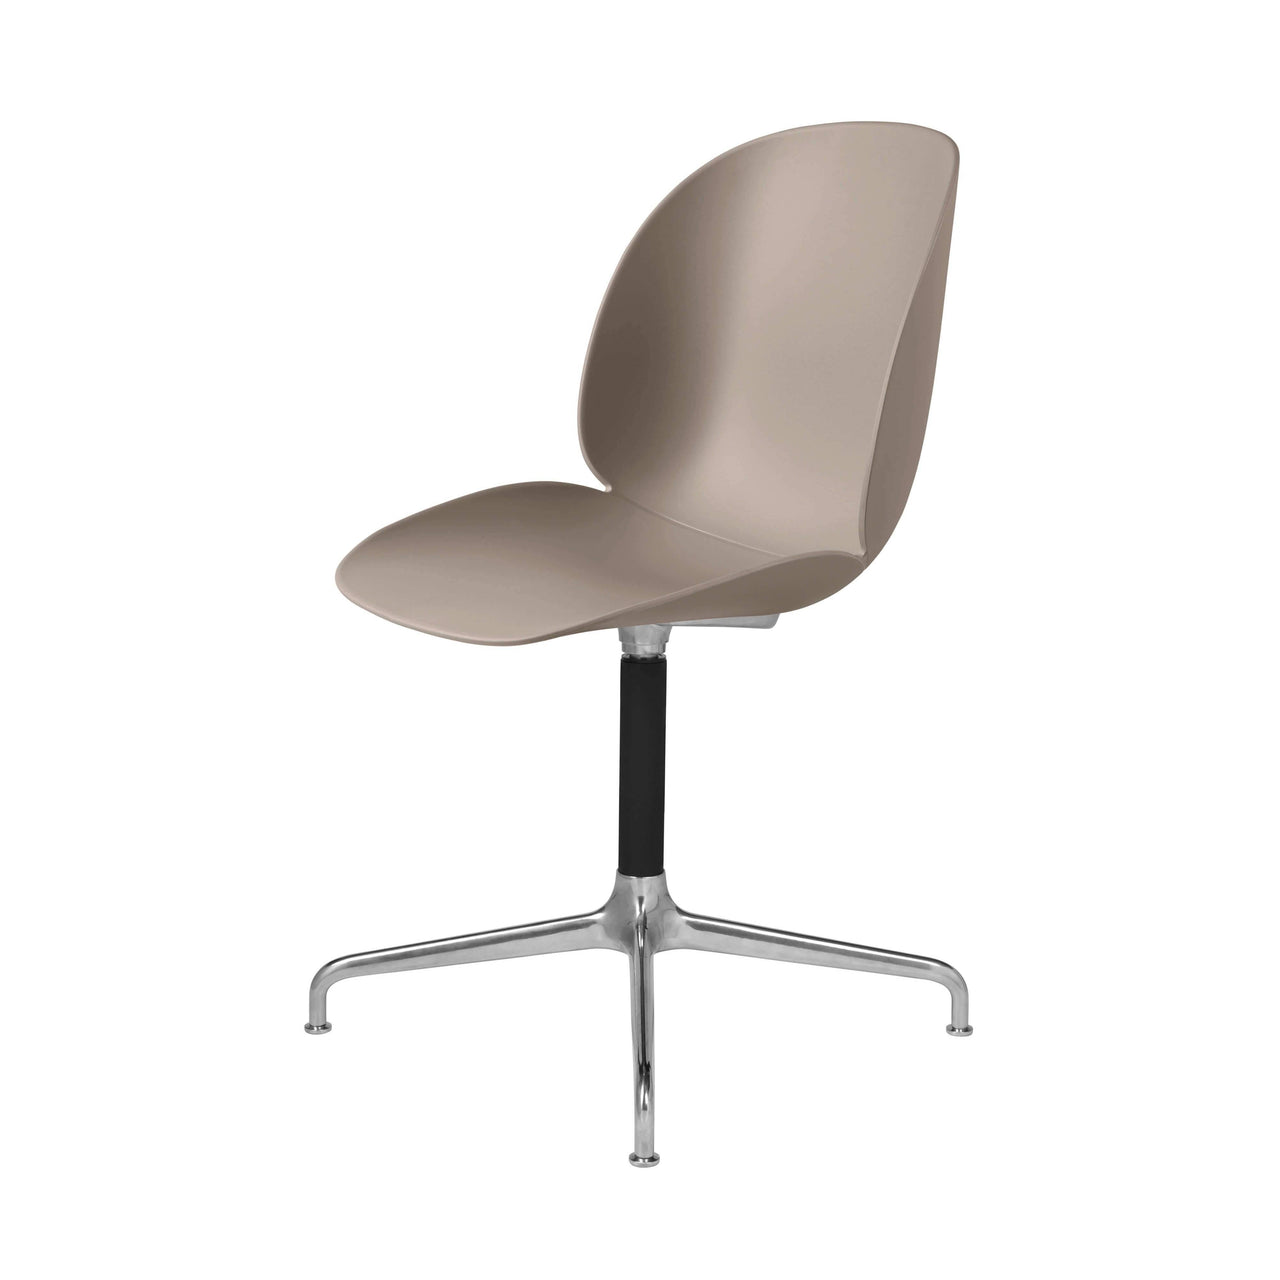 Beetle Meeting Chair: 4-Star Swivel Base: New Beige + Polished Aluminum + Black Matte Base + Plastic Glides